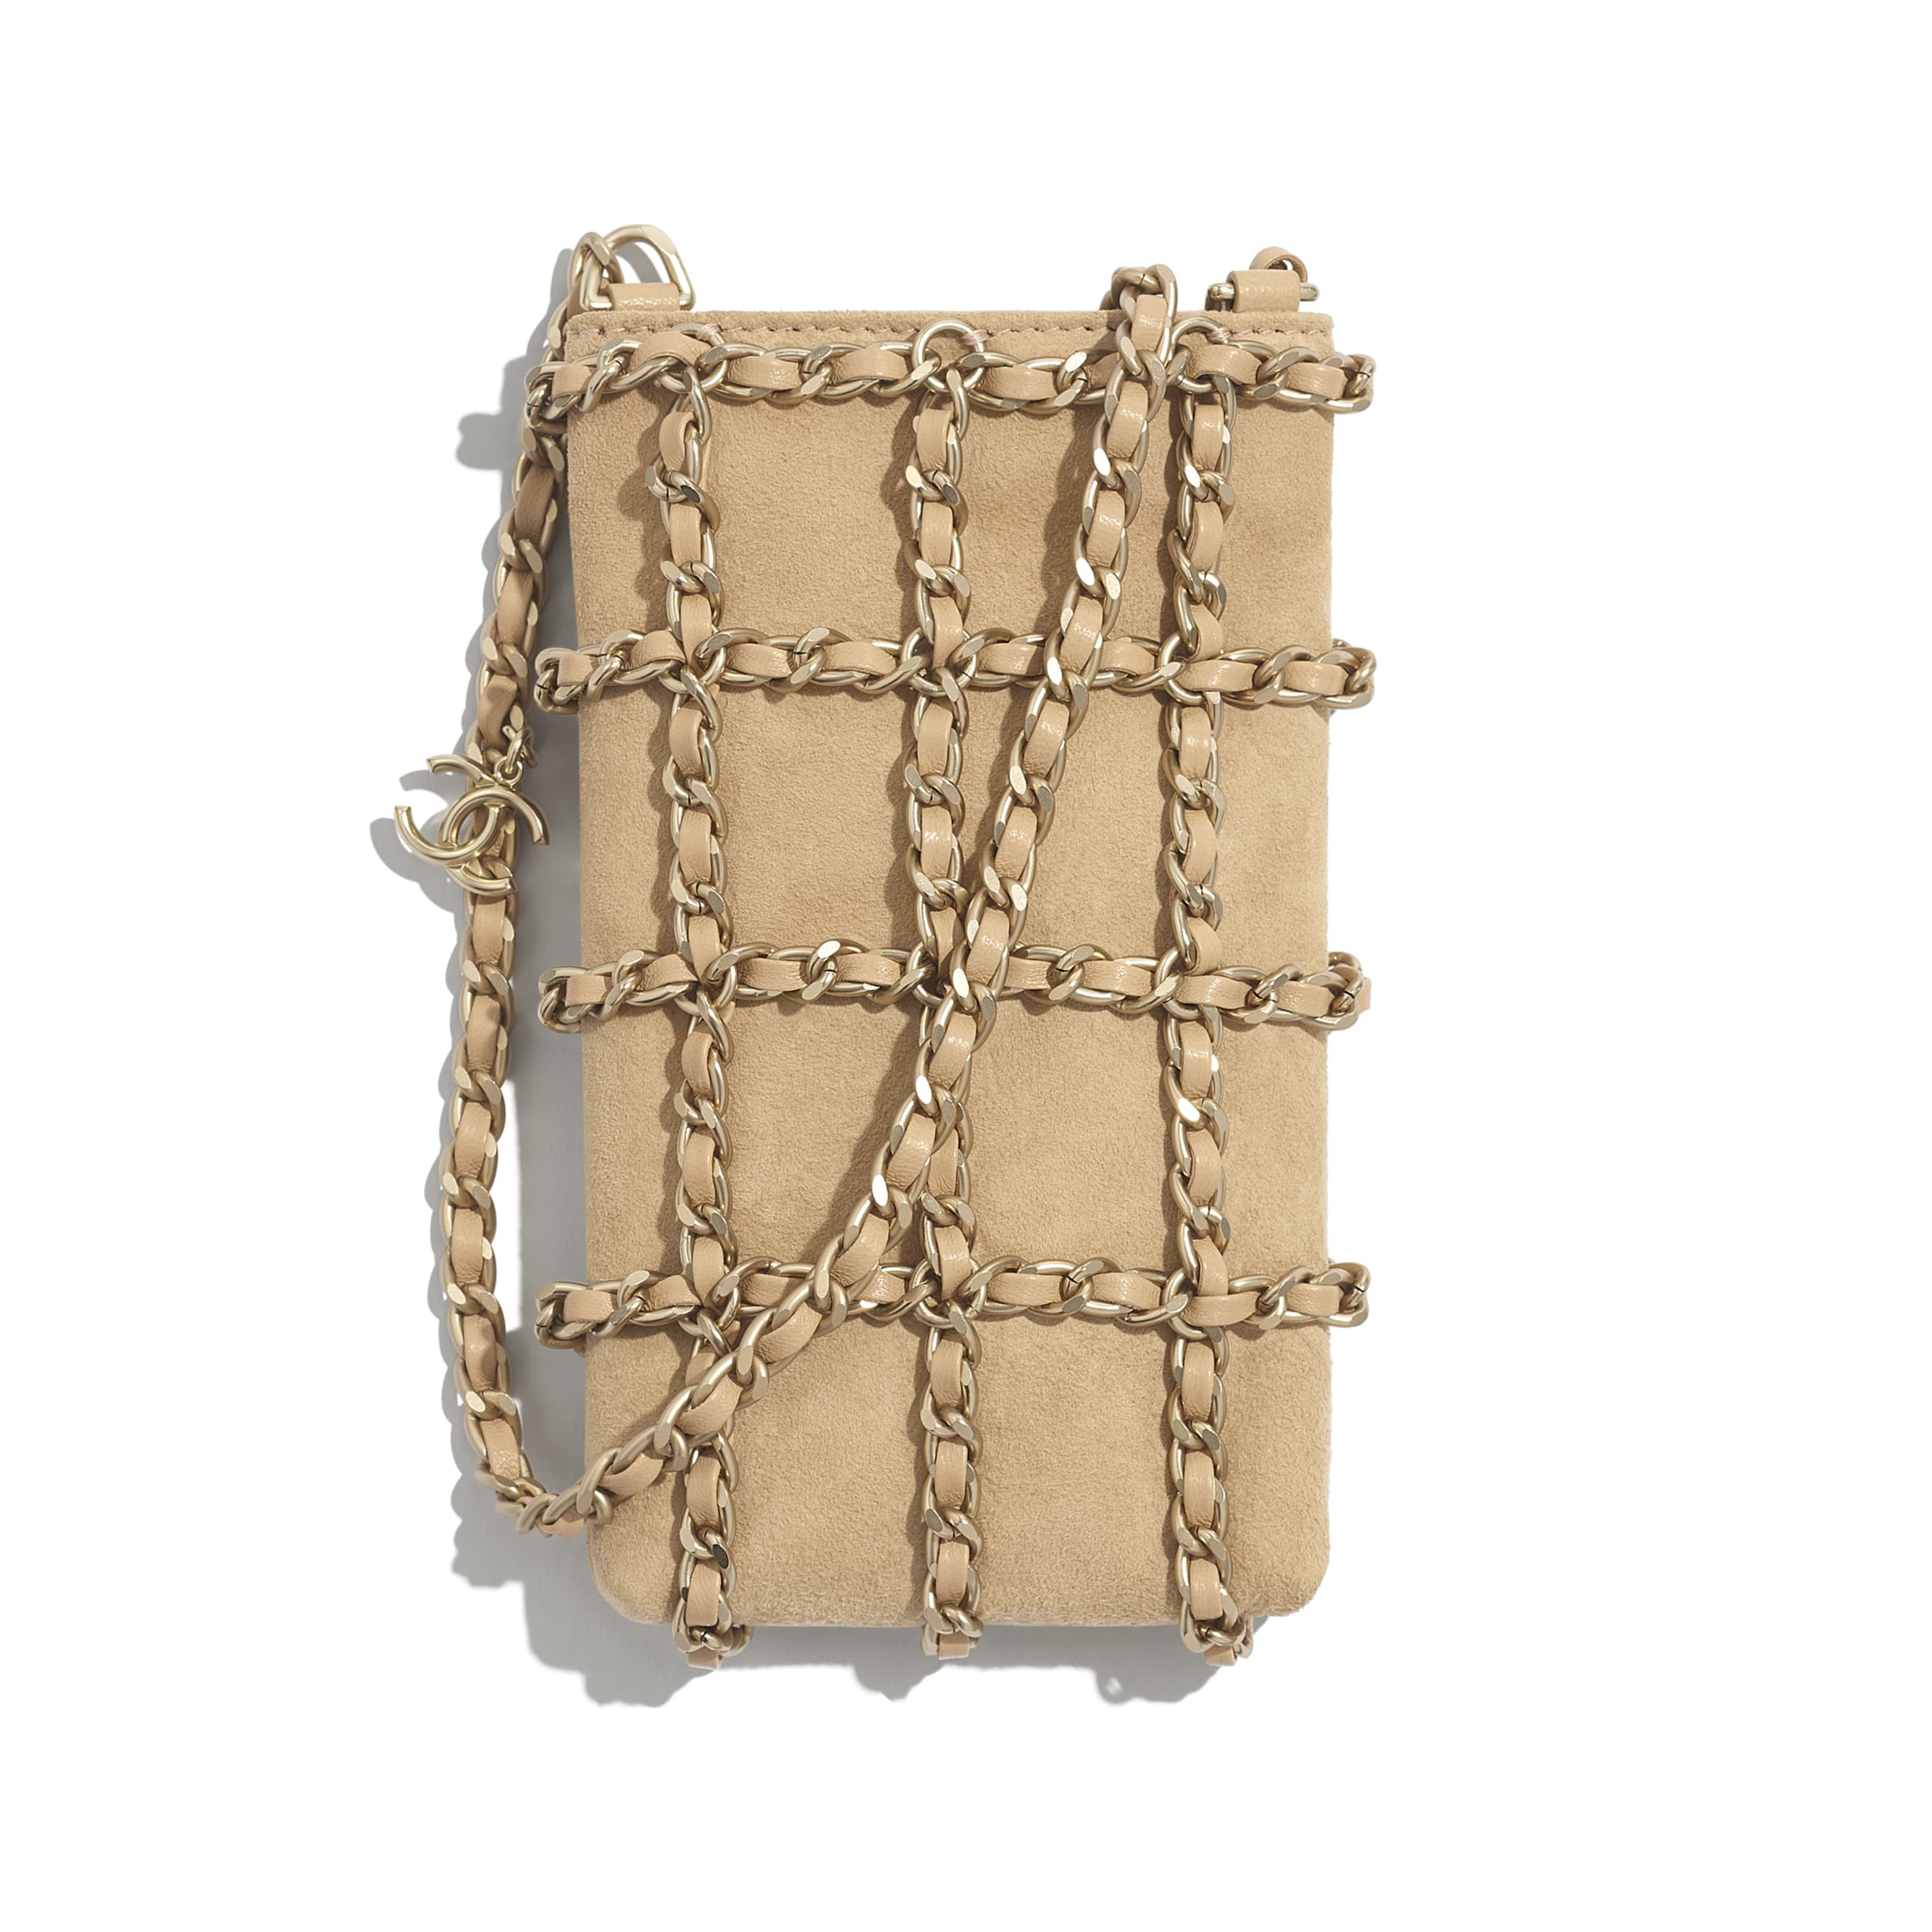 Clutch with Chain - Beige - Suede Goatskin & Gold-Tone Metal - CHANEL - Default view - see standard sized version